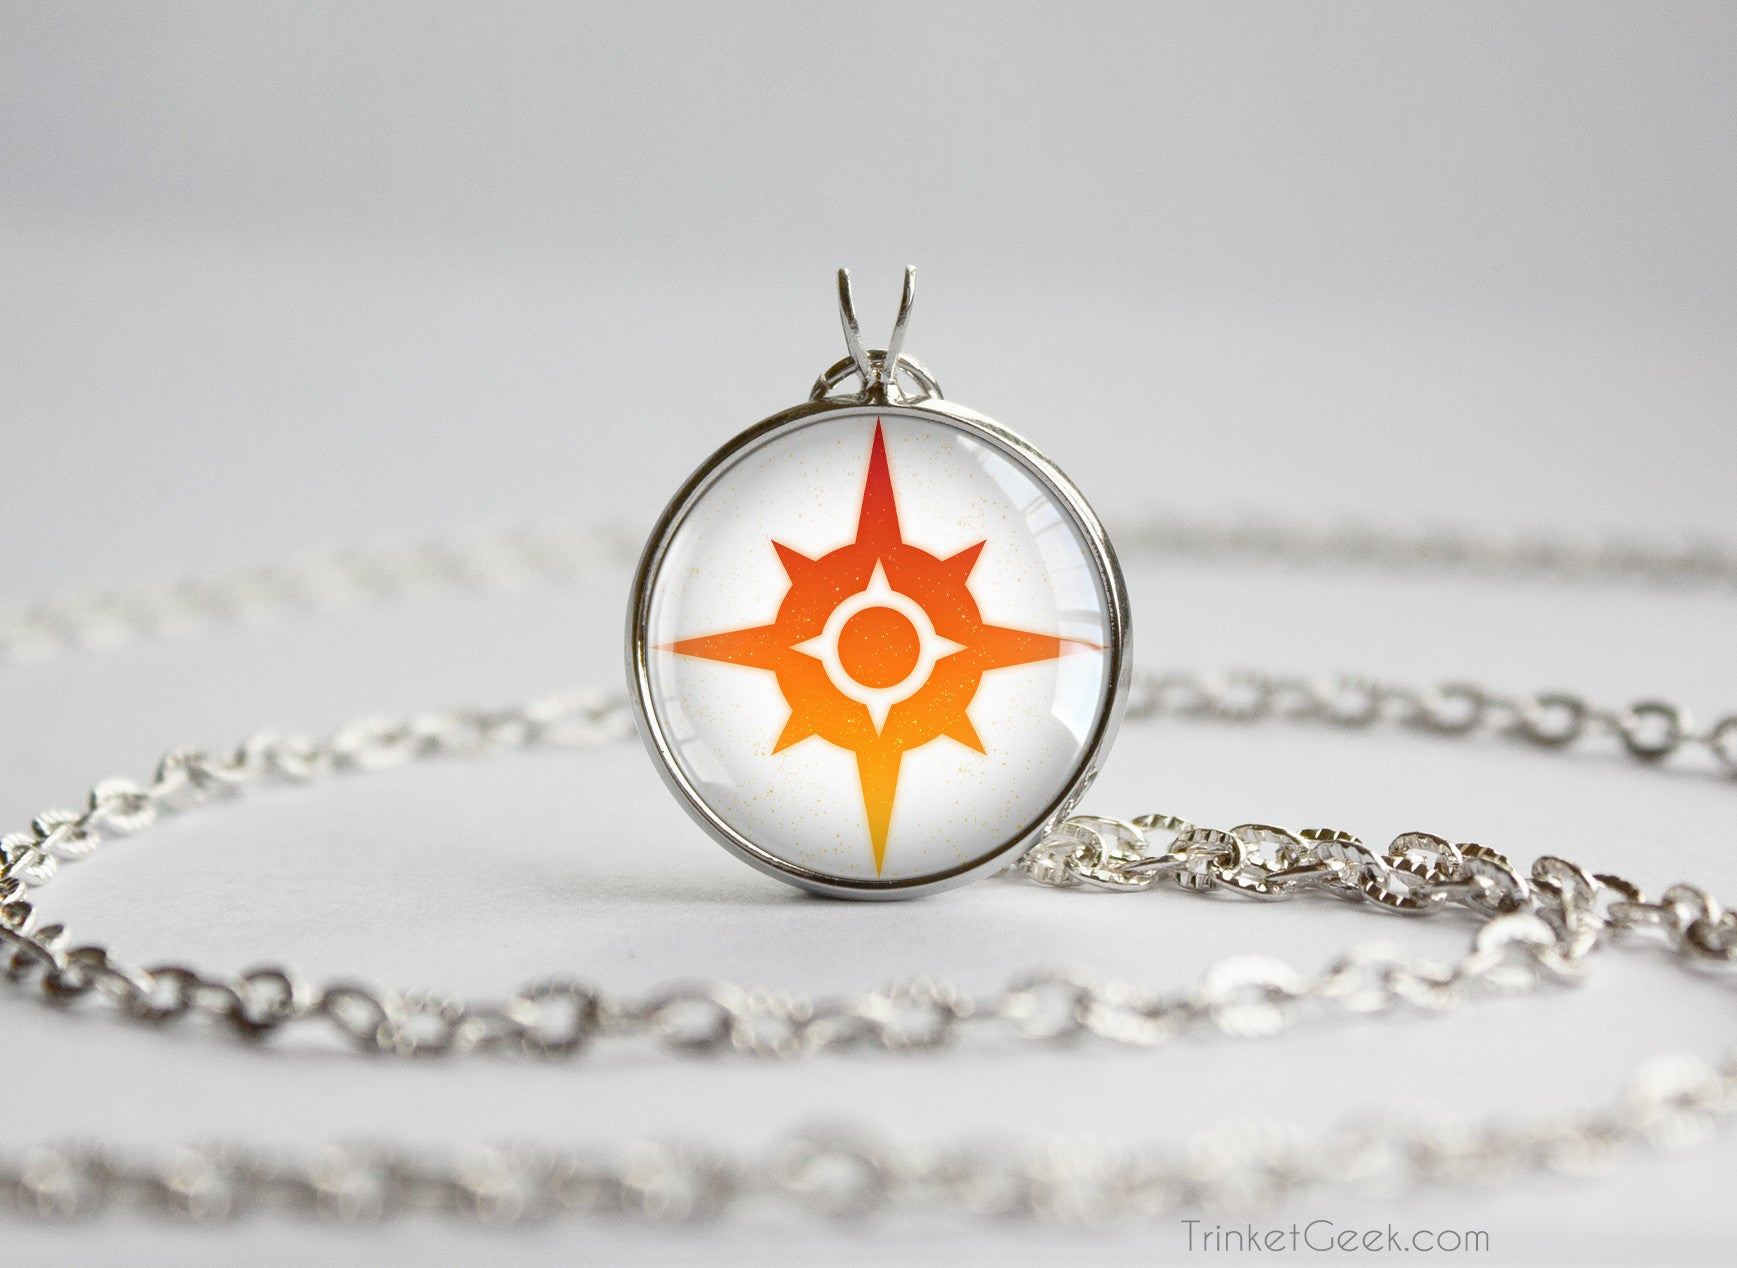 Pokmon Sun And Moon Symbol Pendants Trinket Geek